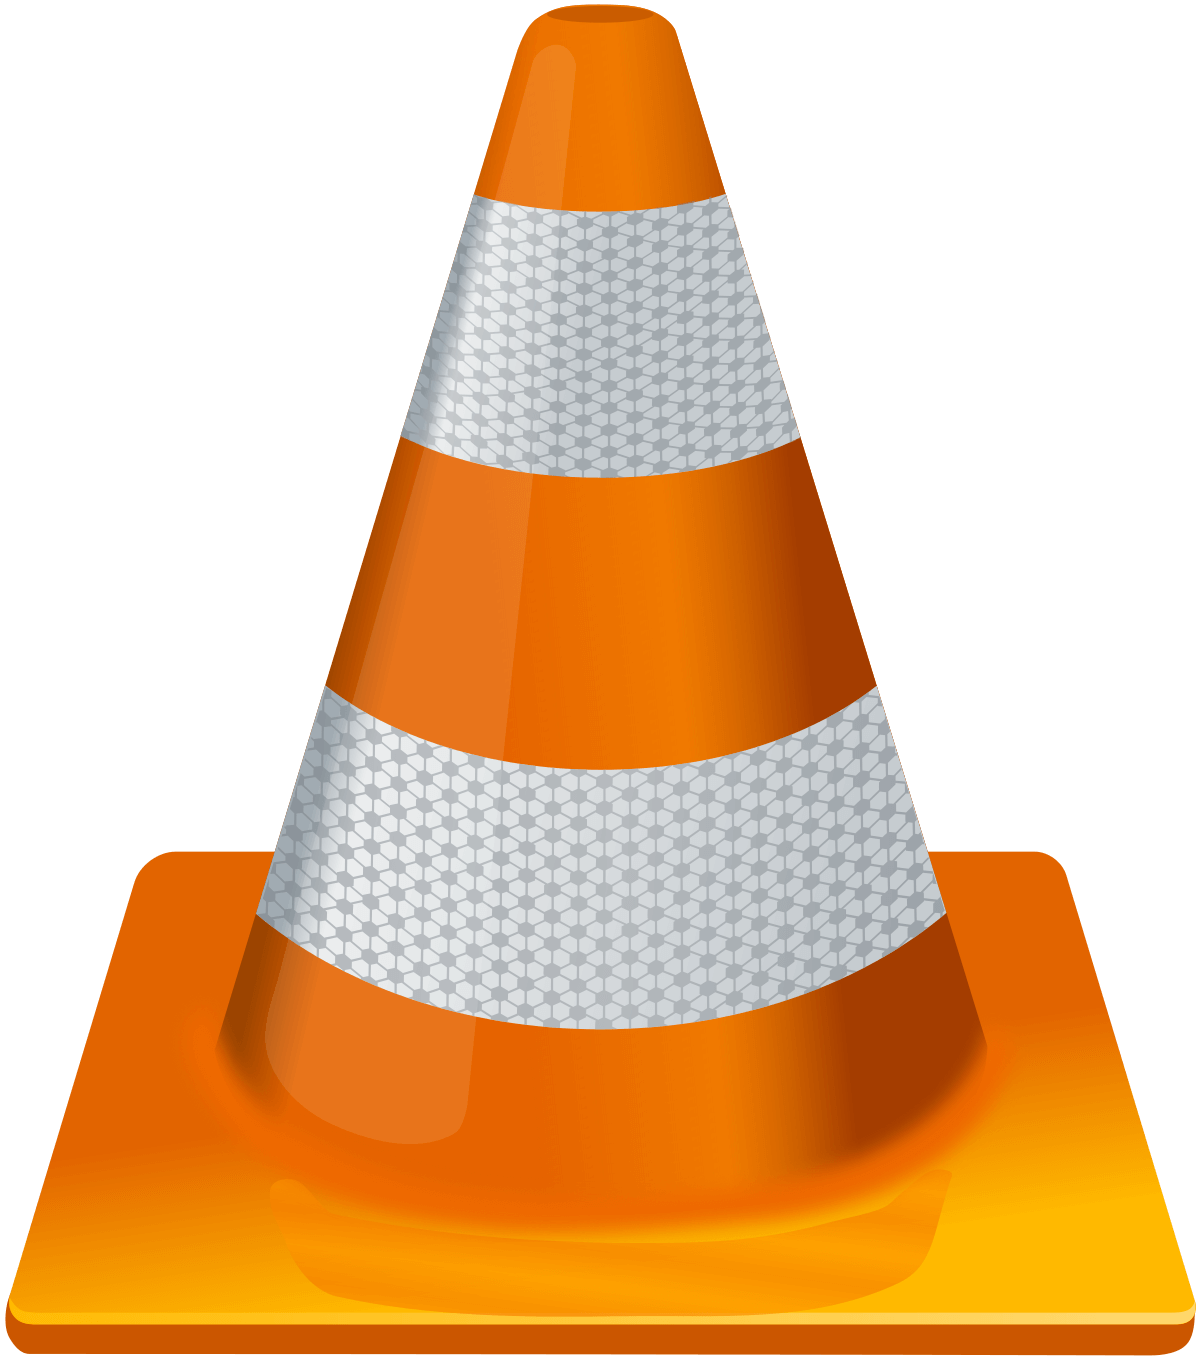 vlc for 4k videos